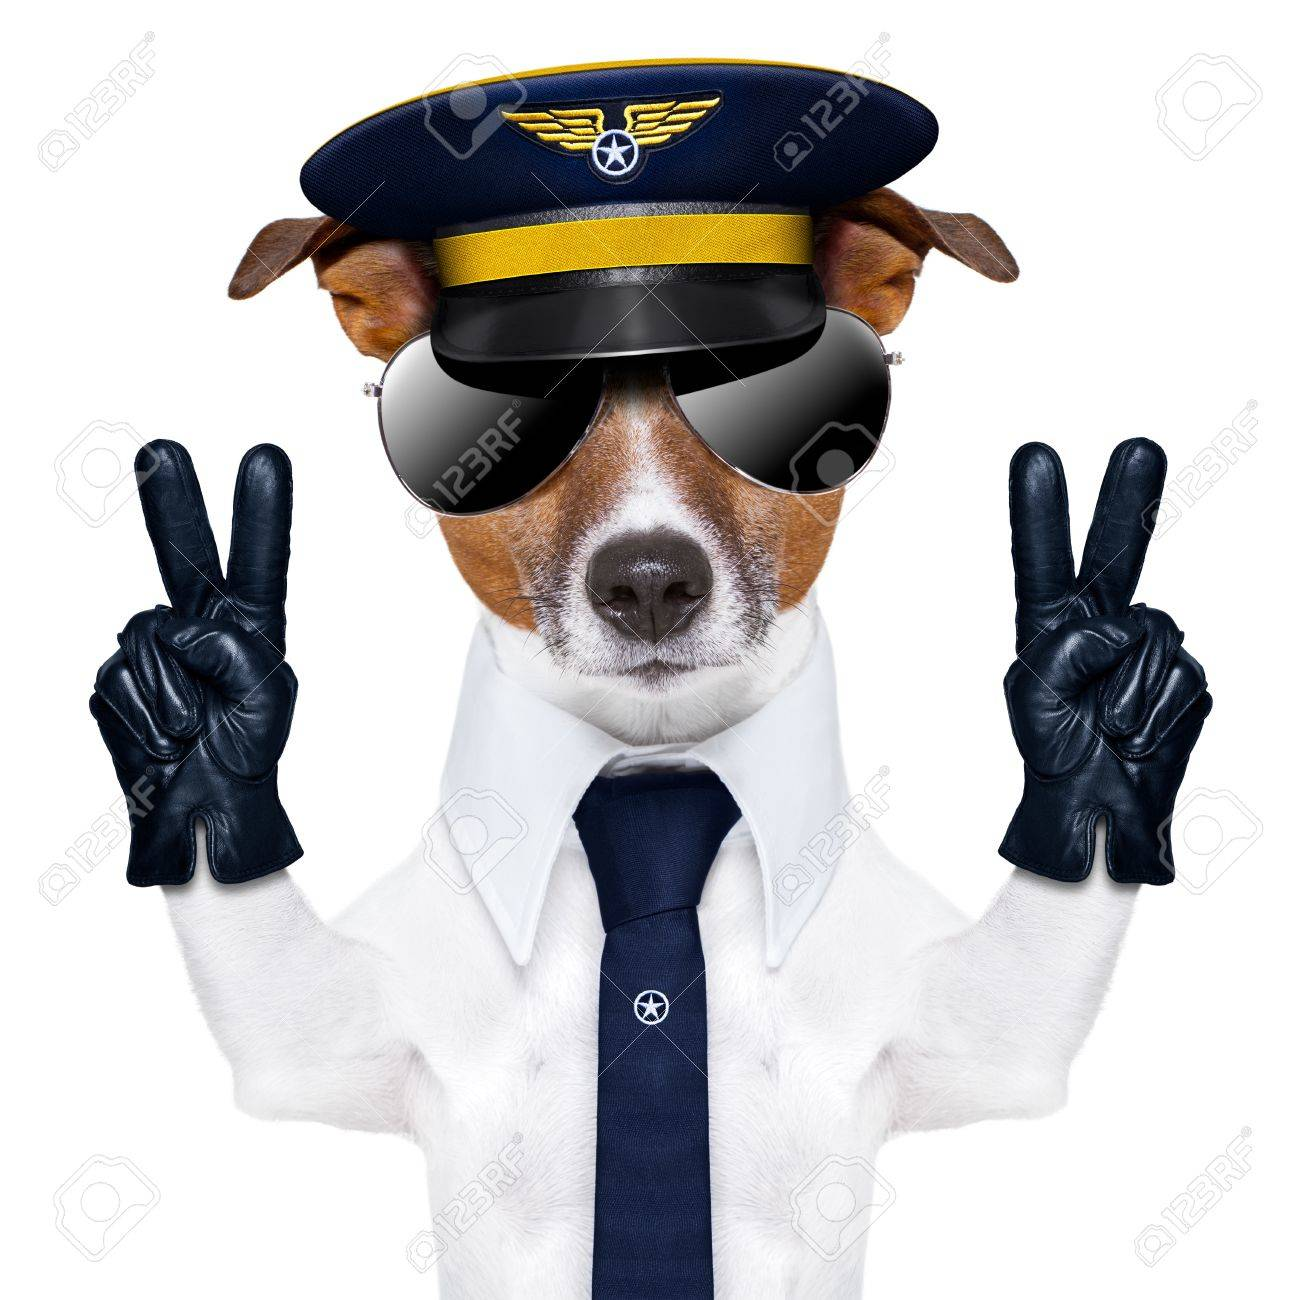 pilot captain dog with peace fingers and a blue tie Stock Photo - 21086297